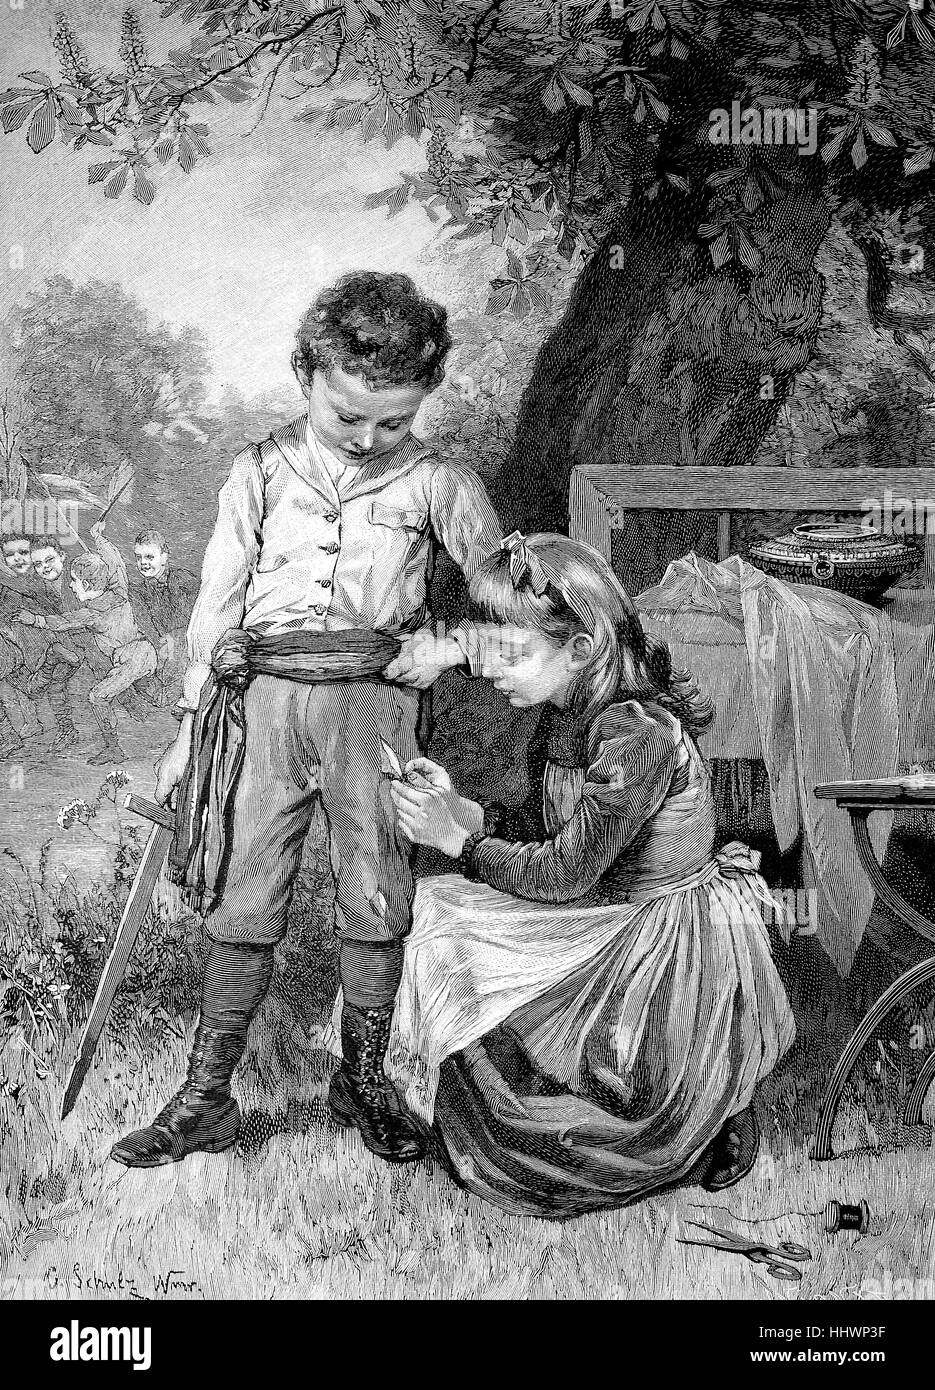 A good sister, sister sews the torn pants of her brother, original drawing by D, Schulz, historical image or illustration, - Stock Image